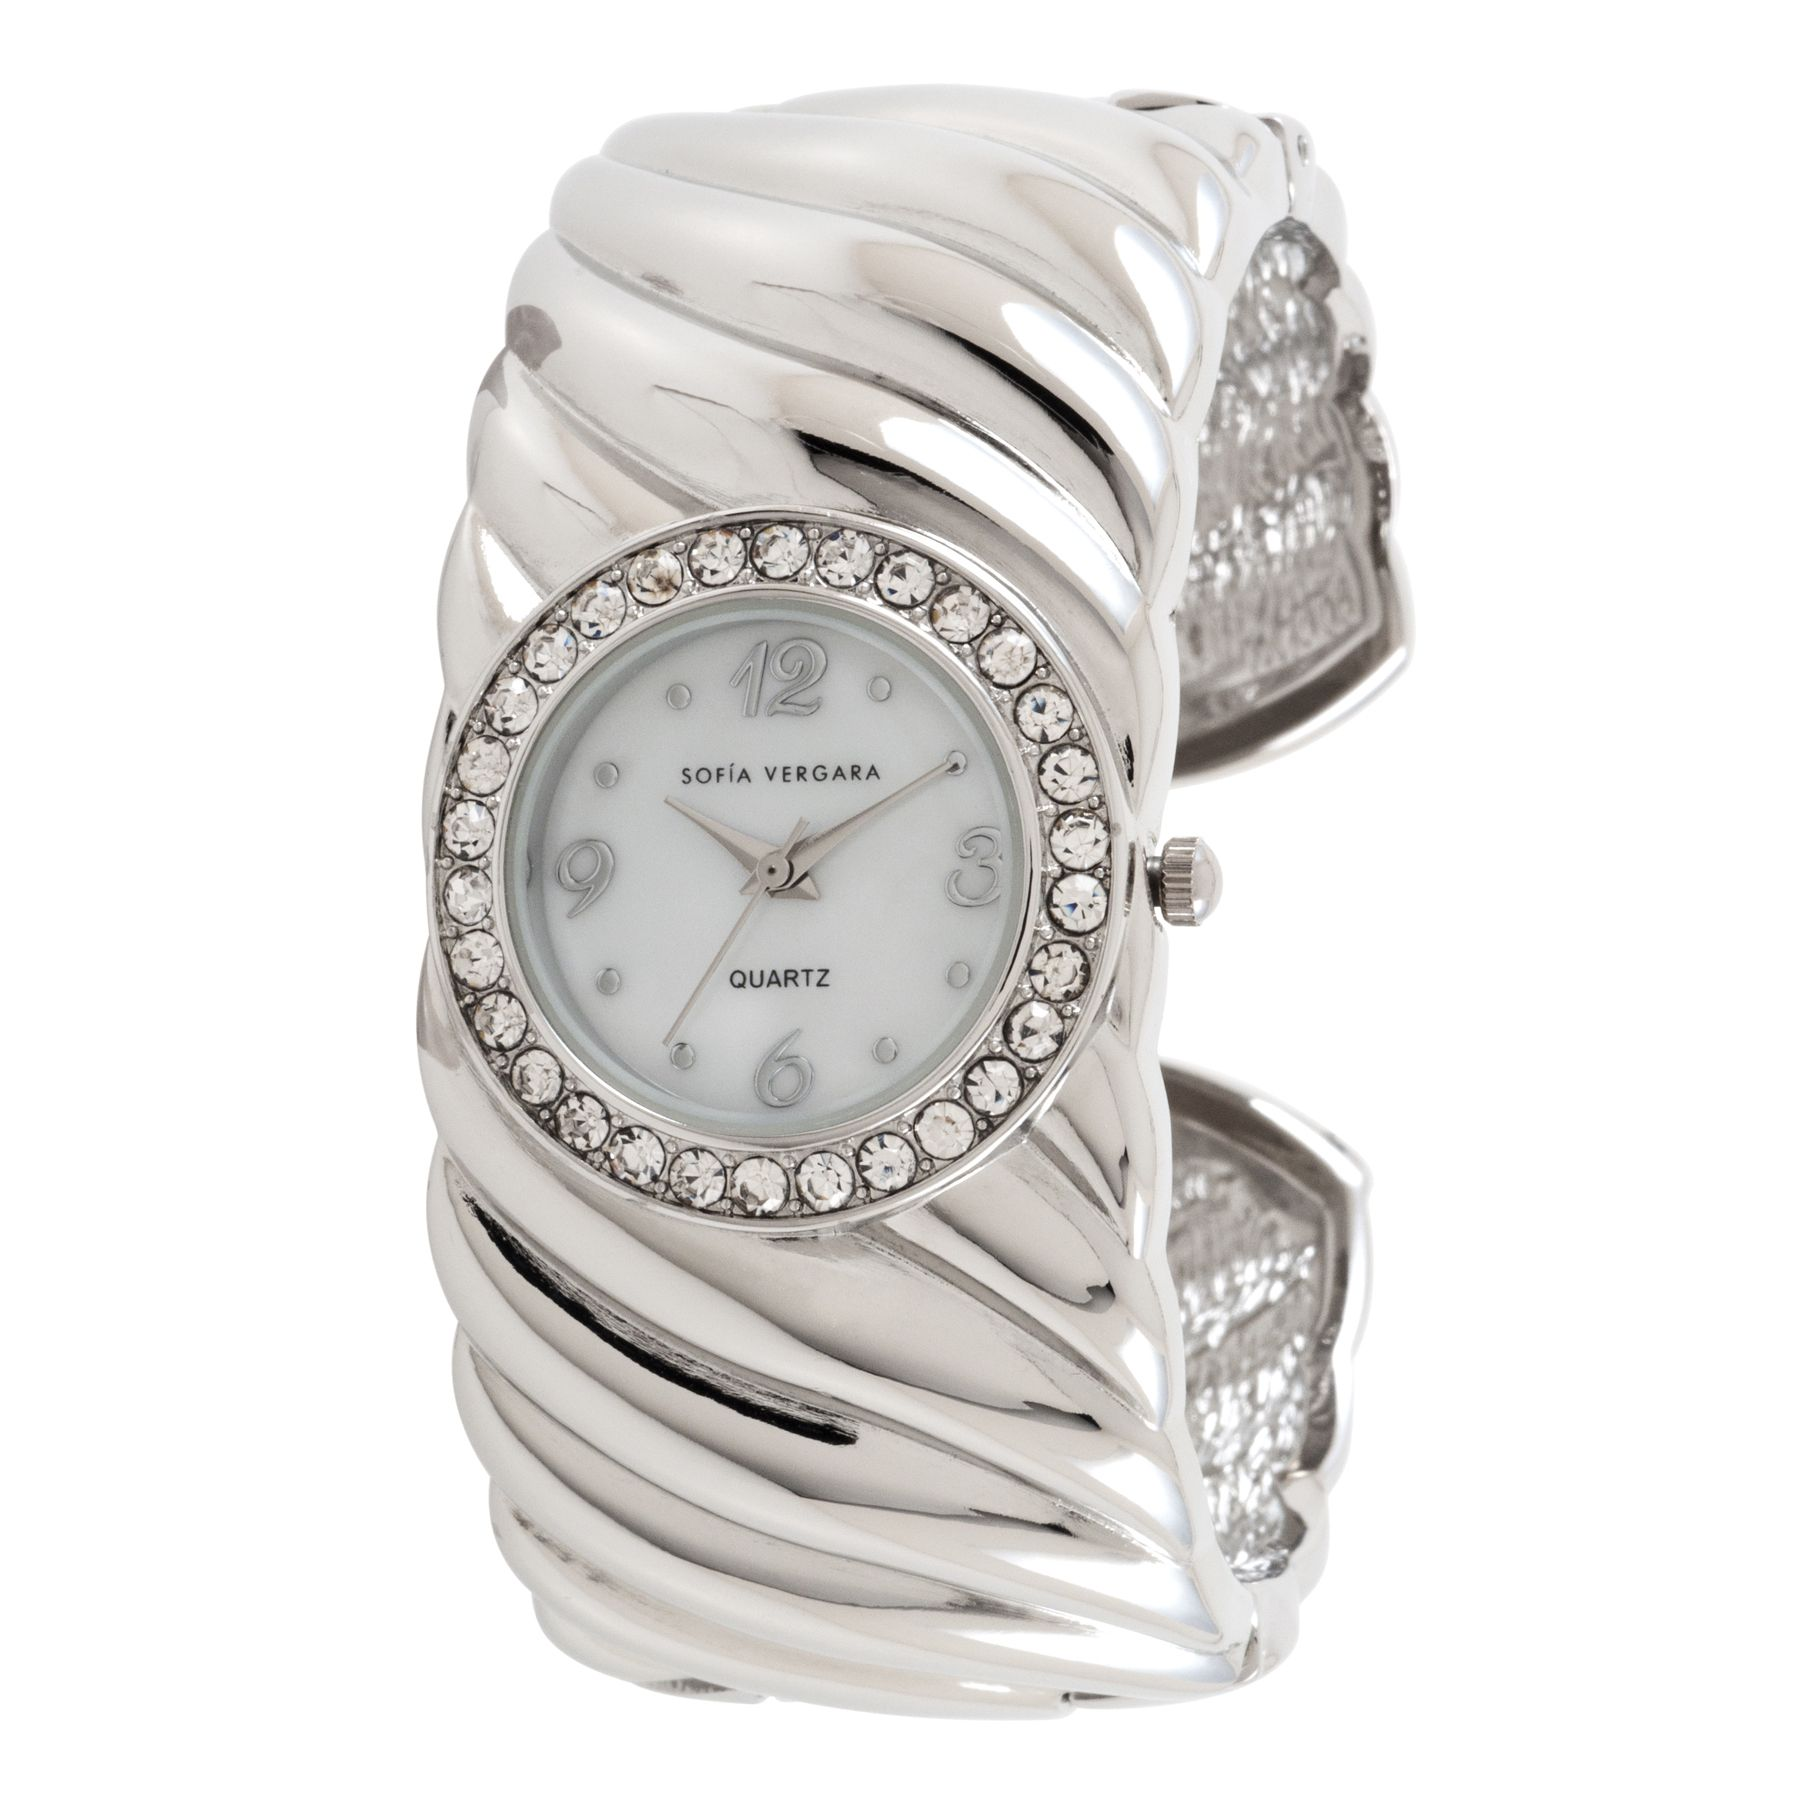 Sofia by Sofia Vergara  Ladies Stone